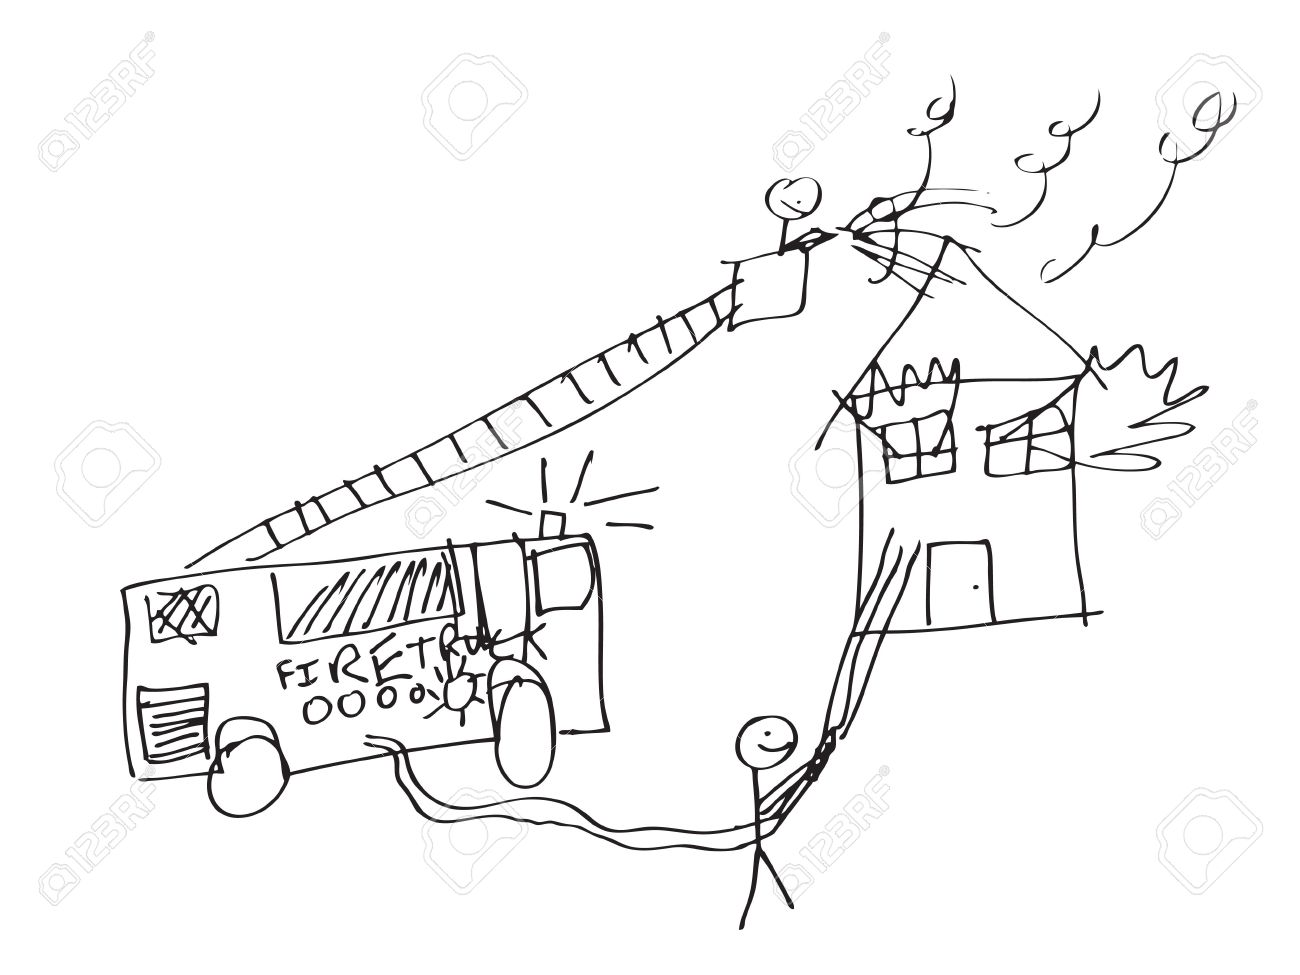 1300x975 A Vector Format Image Of A Child Like Drawing Of Firemen Trying